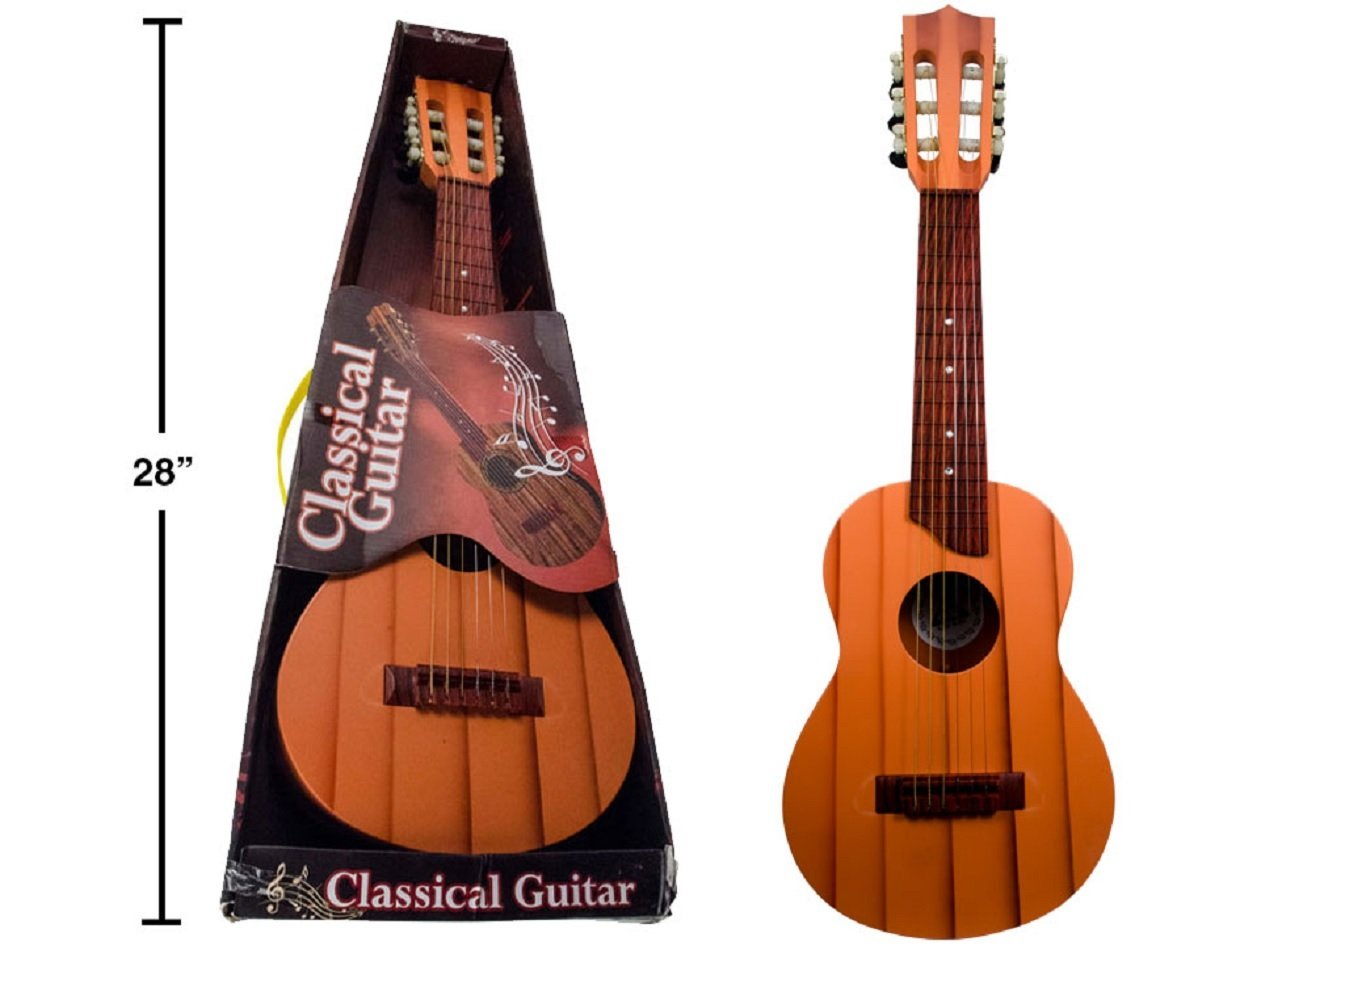 Wood Grain Classical Guitar Toy (Plastic), 28 inches, Brown Color ctg Brands